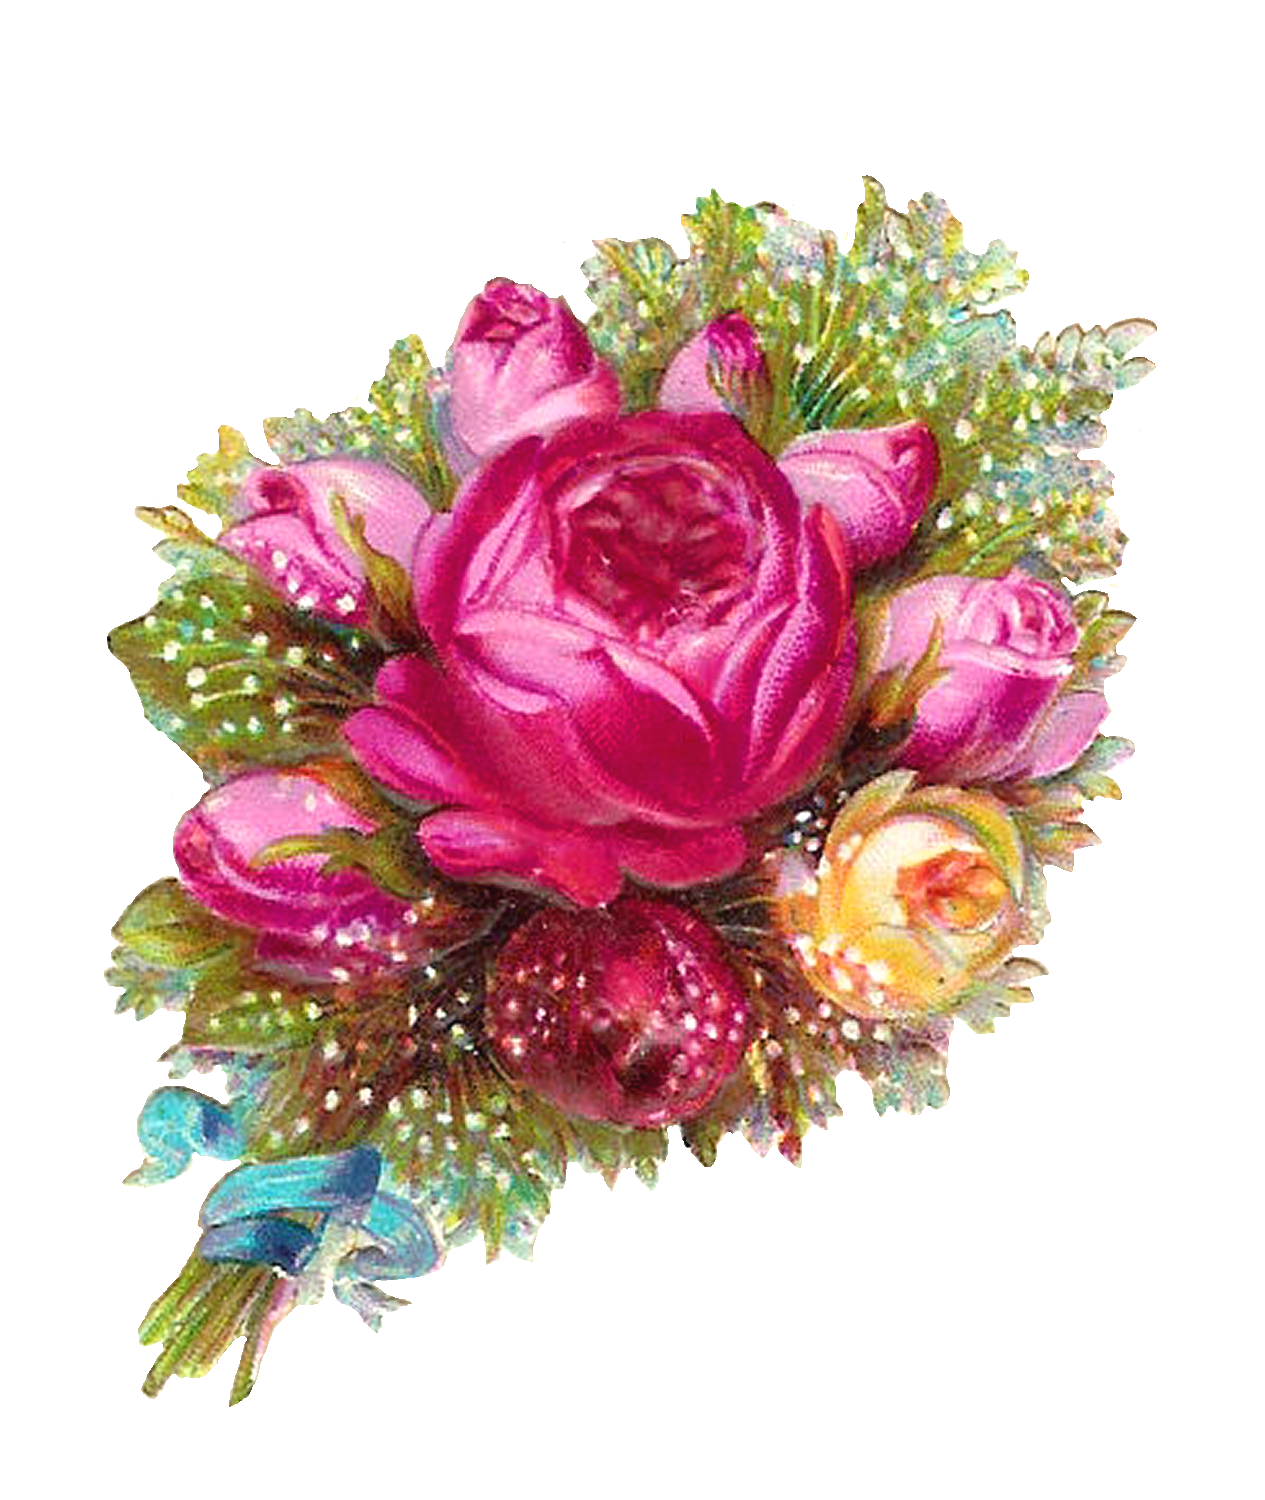 Pink flower bouquet clipart banner freeuse library Bouquet PNG Images Transparent Free Download | PNGMart.com banner freeuse library